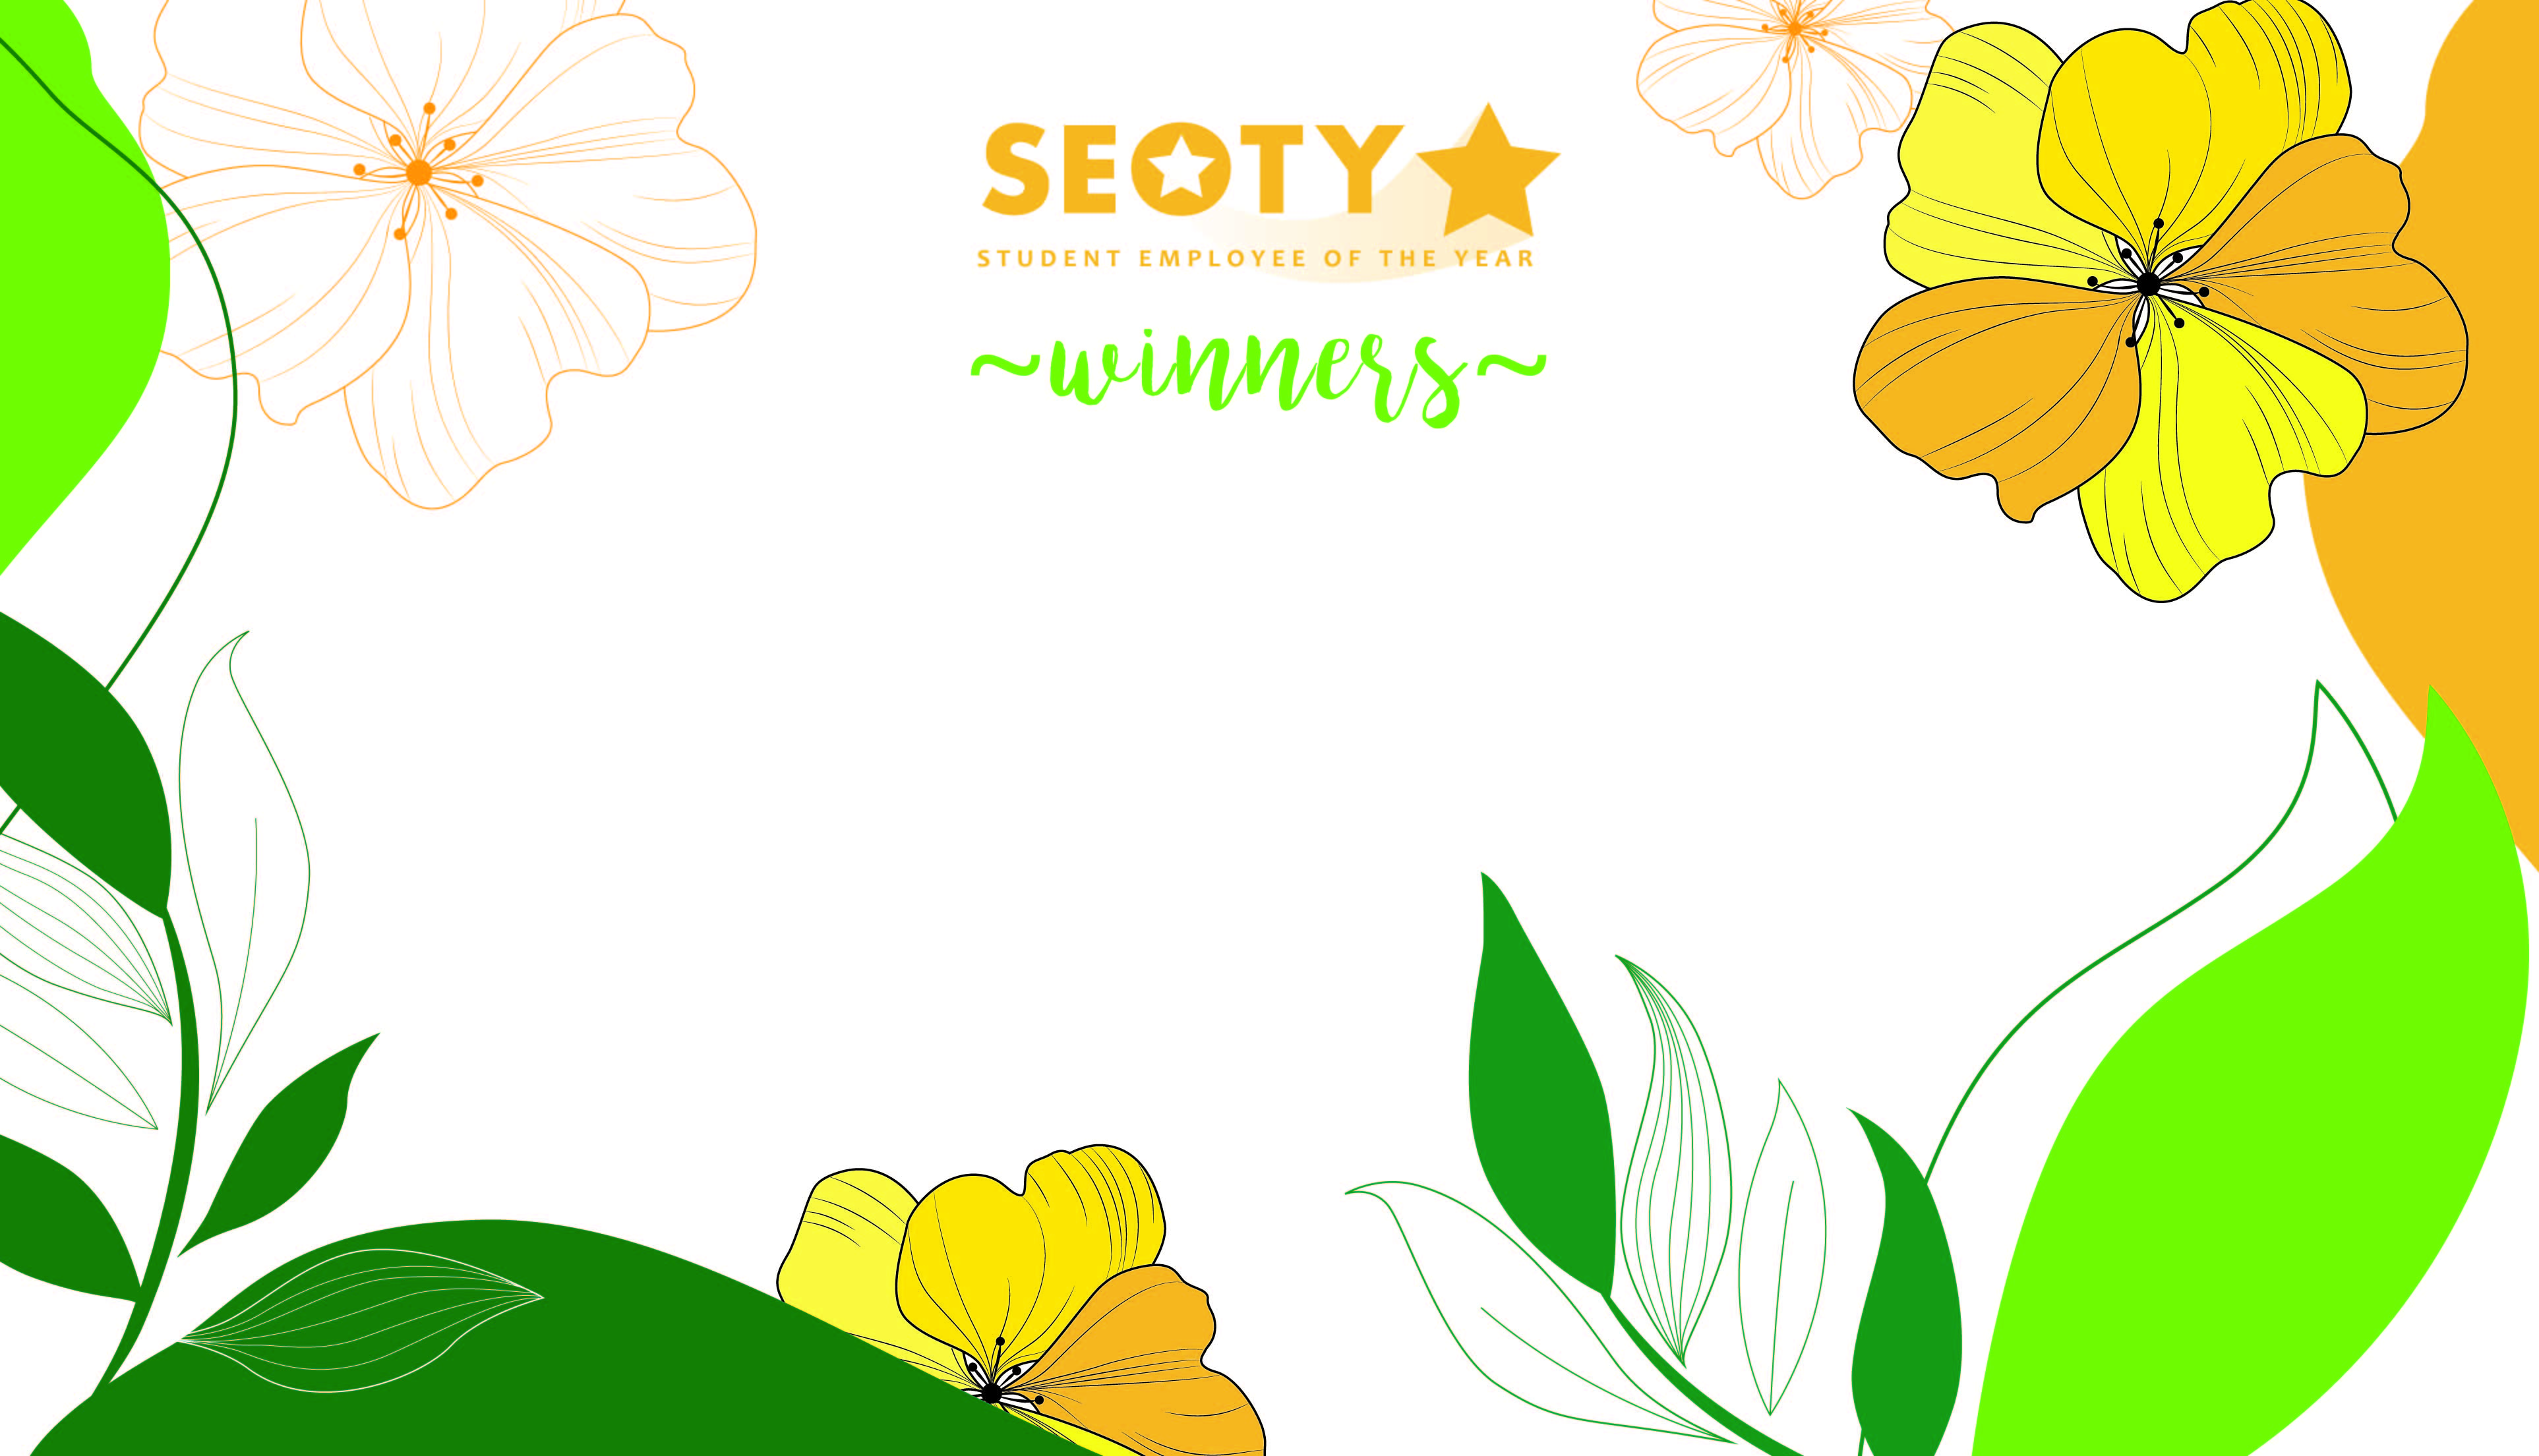 Line illustrations of flowers in orange and green with label SEOTY Nominations in script